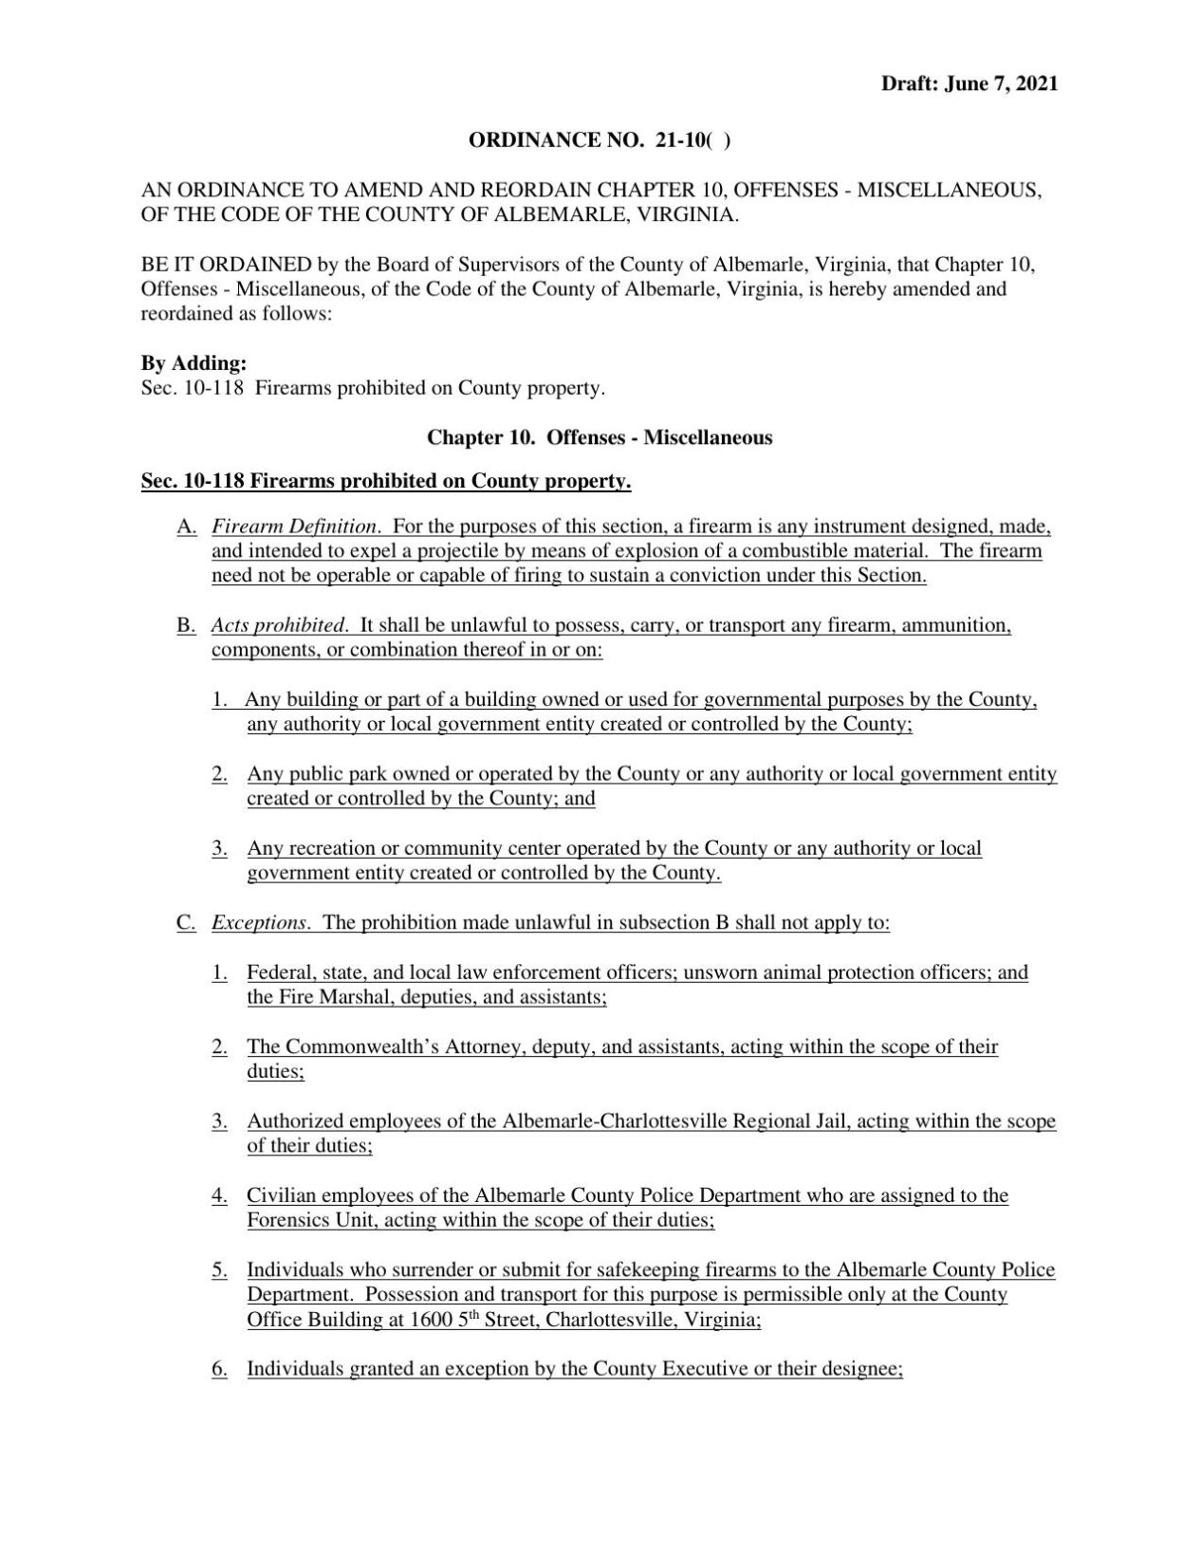 Proposed firearms ordinance